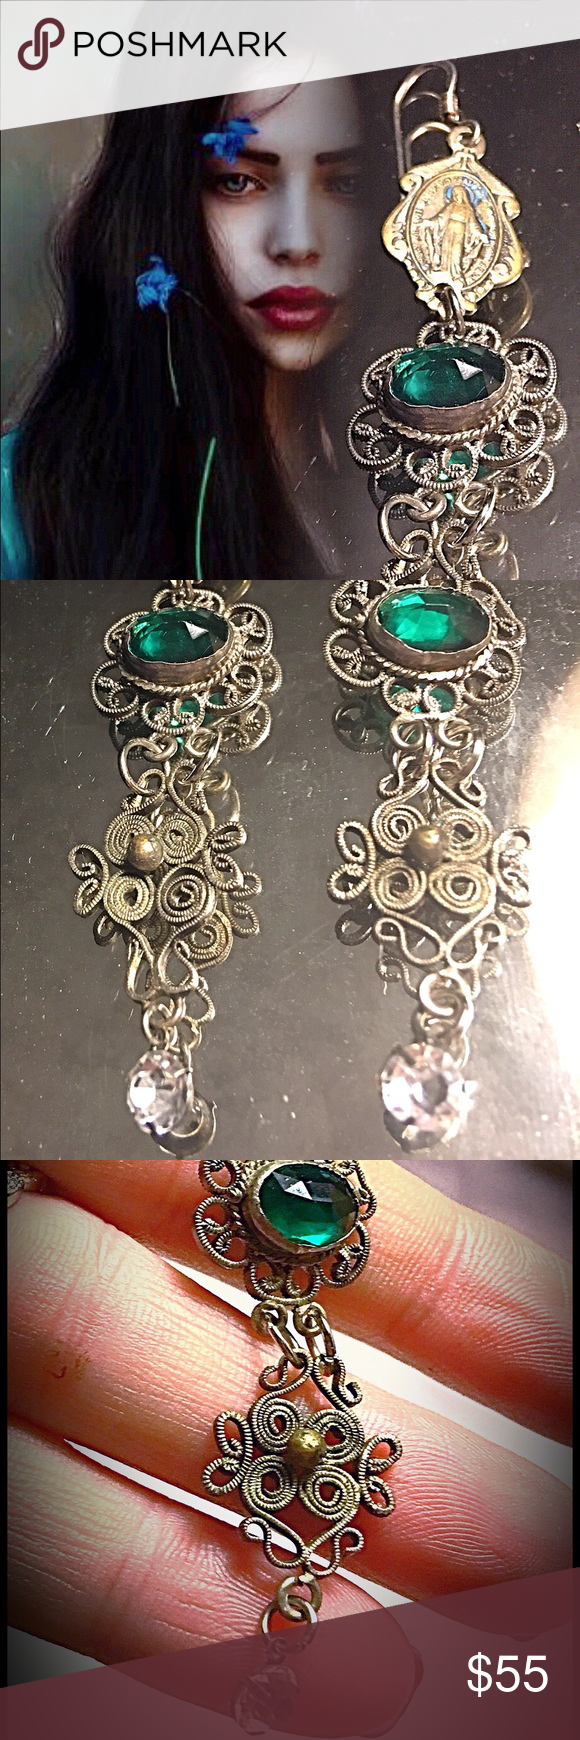 Handmade Assemblage Filigree Emerald Glass Earring Handmade Assemblage Filigree Dangle Earrings Featuring Emerald Green Glass Faceted Beveled Set Dangle Earrings. Silver Metal from 20's & 30's, Small Mary Medallions, Rhinestone Open Back Dangle. Gorgeous Eye-Catching Earrings with Old World Charm. Handmade Jewelry Earrings